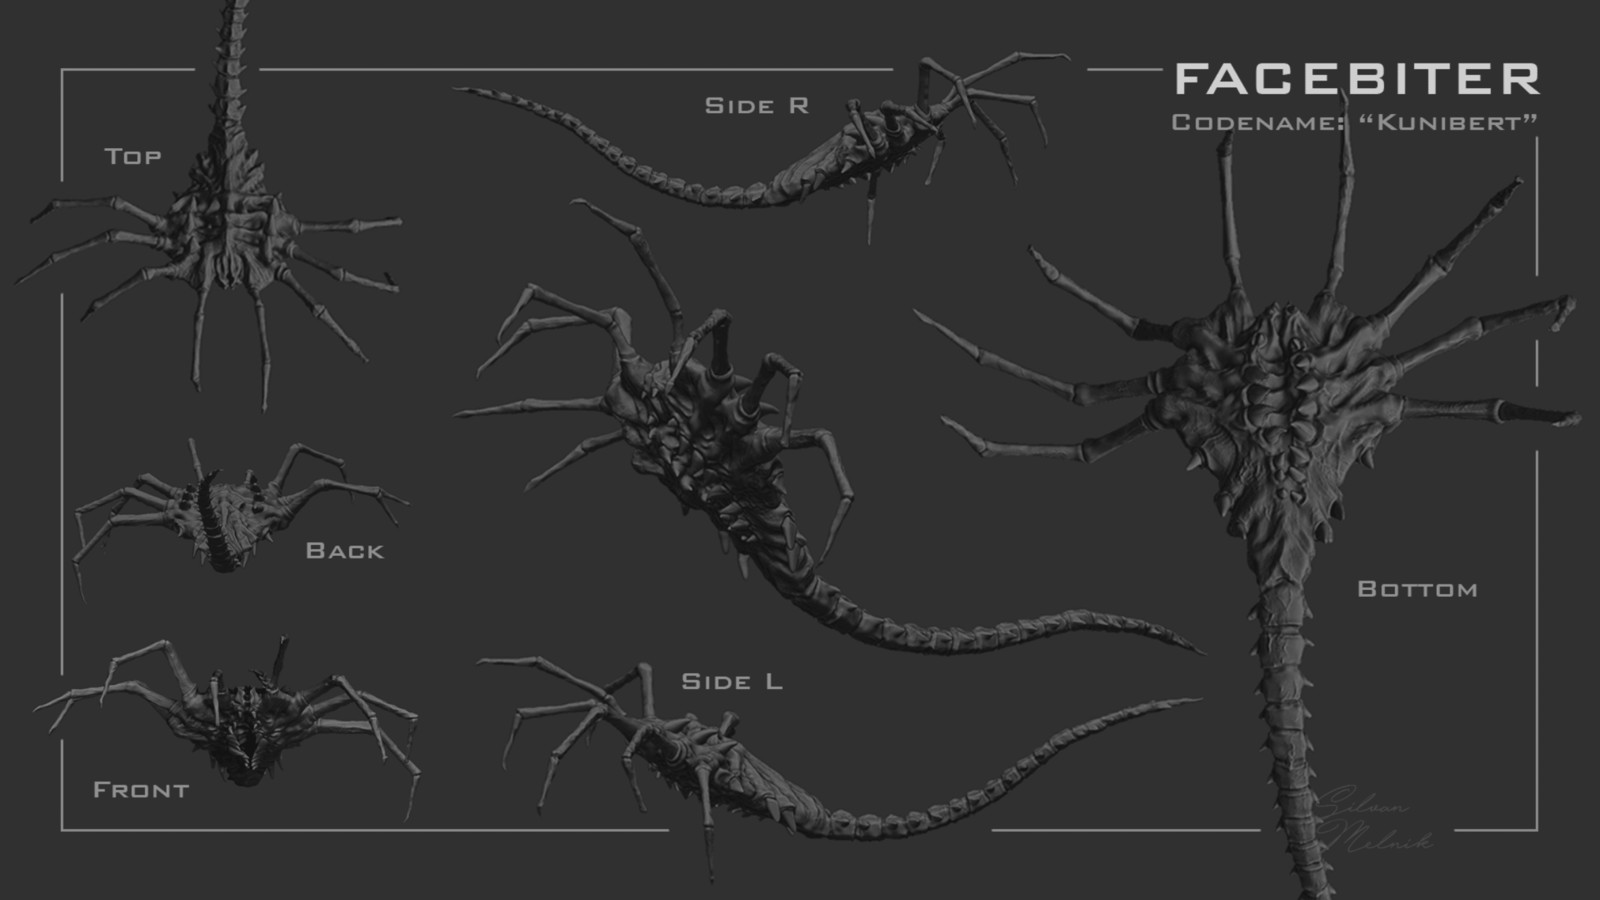 Facehugger Revision - Facebiter